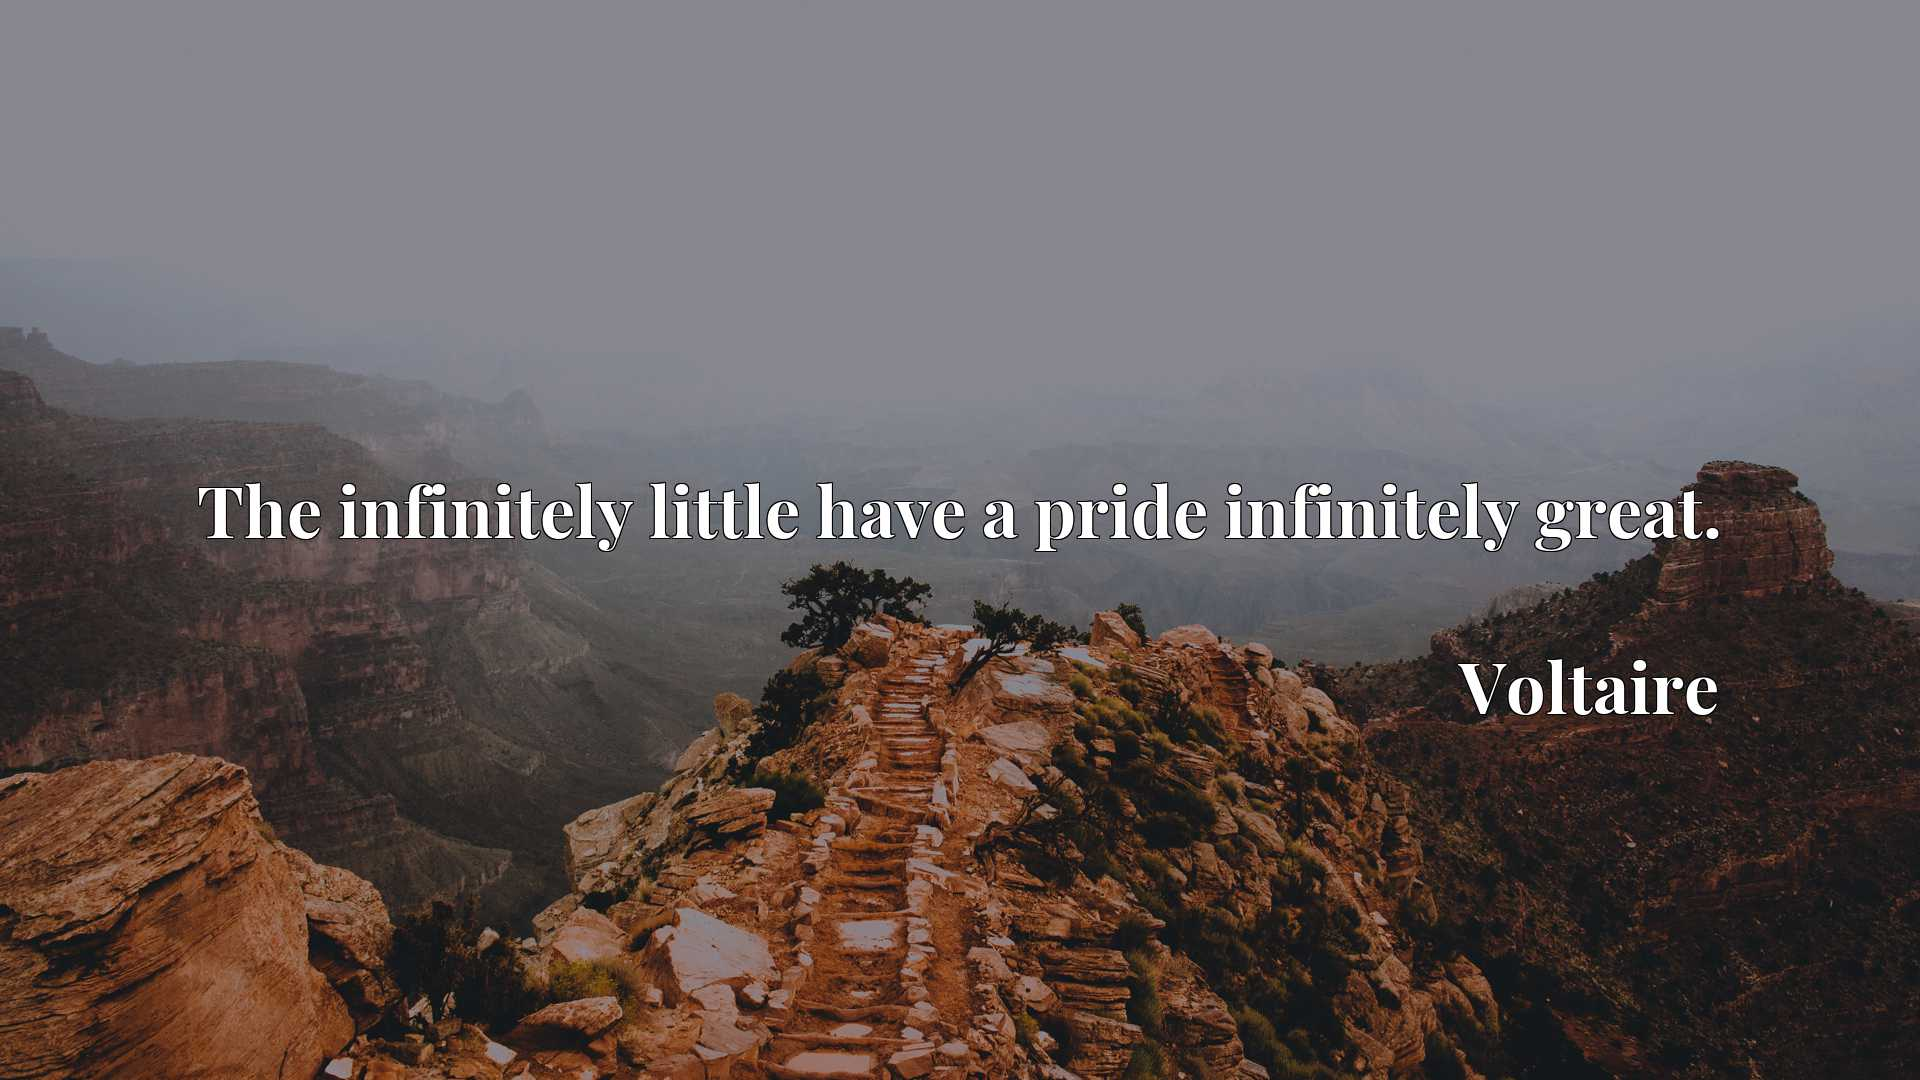 The infinitely little have a pride infinitely great.